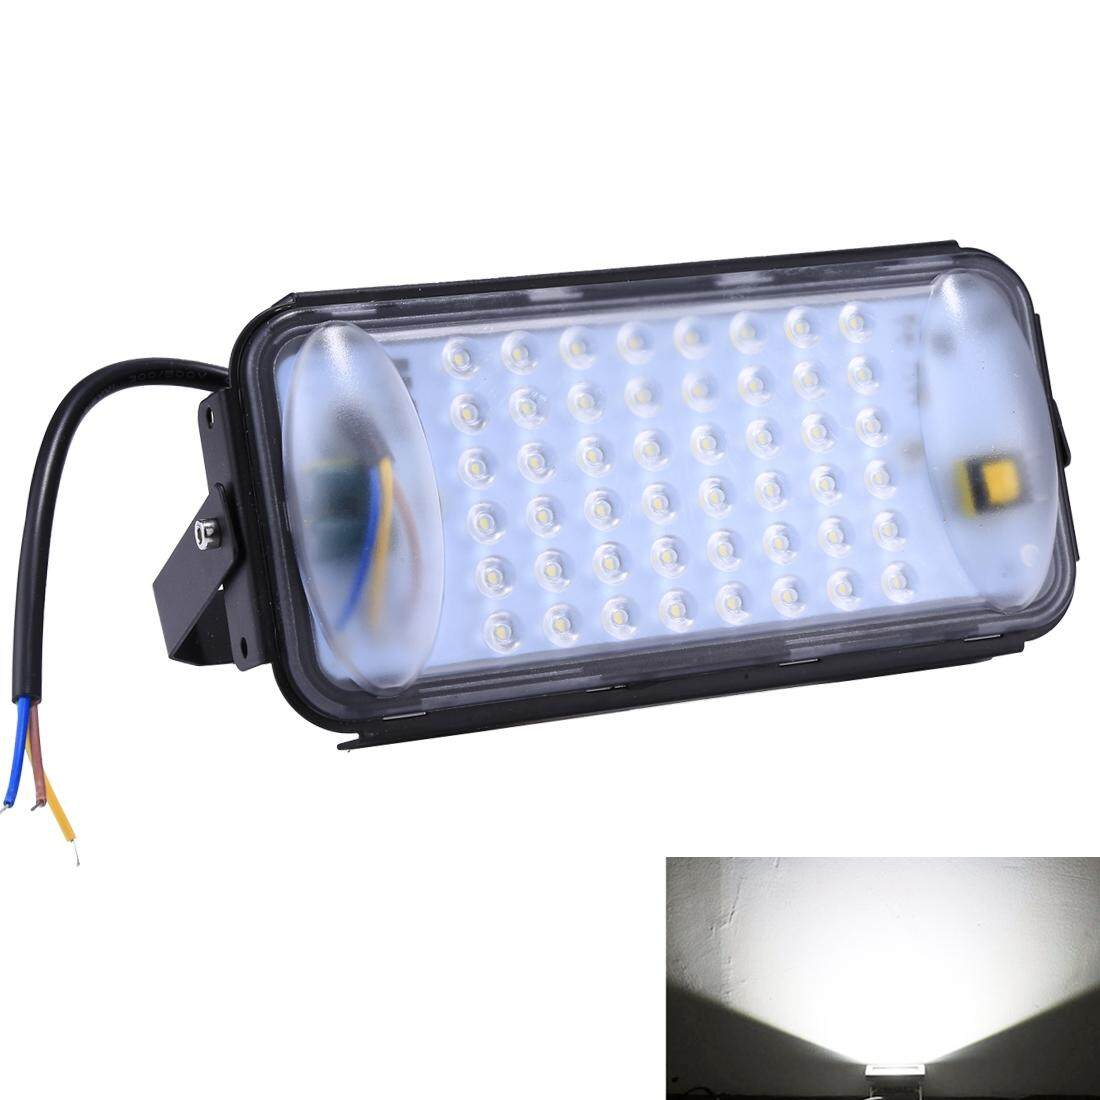 50W 48 LEDs SMD 2835 IP67 Waterproof White Light Ultra-thin LED Flood Light, AC 180-280V - intl